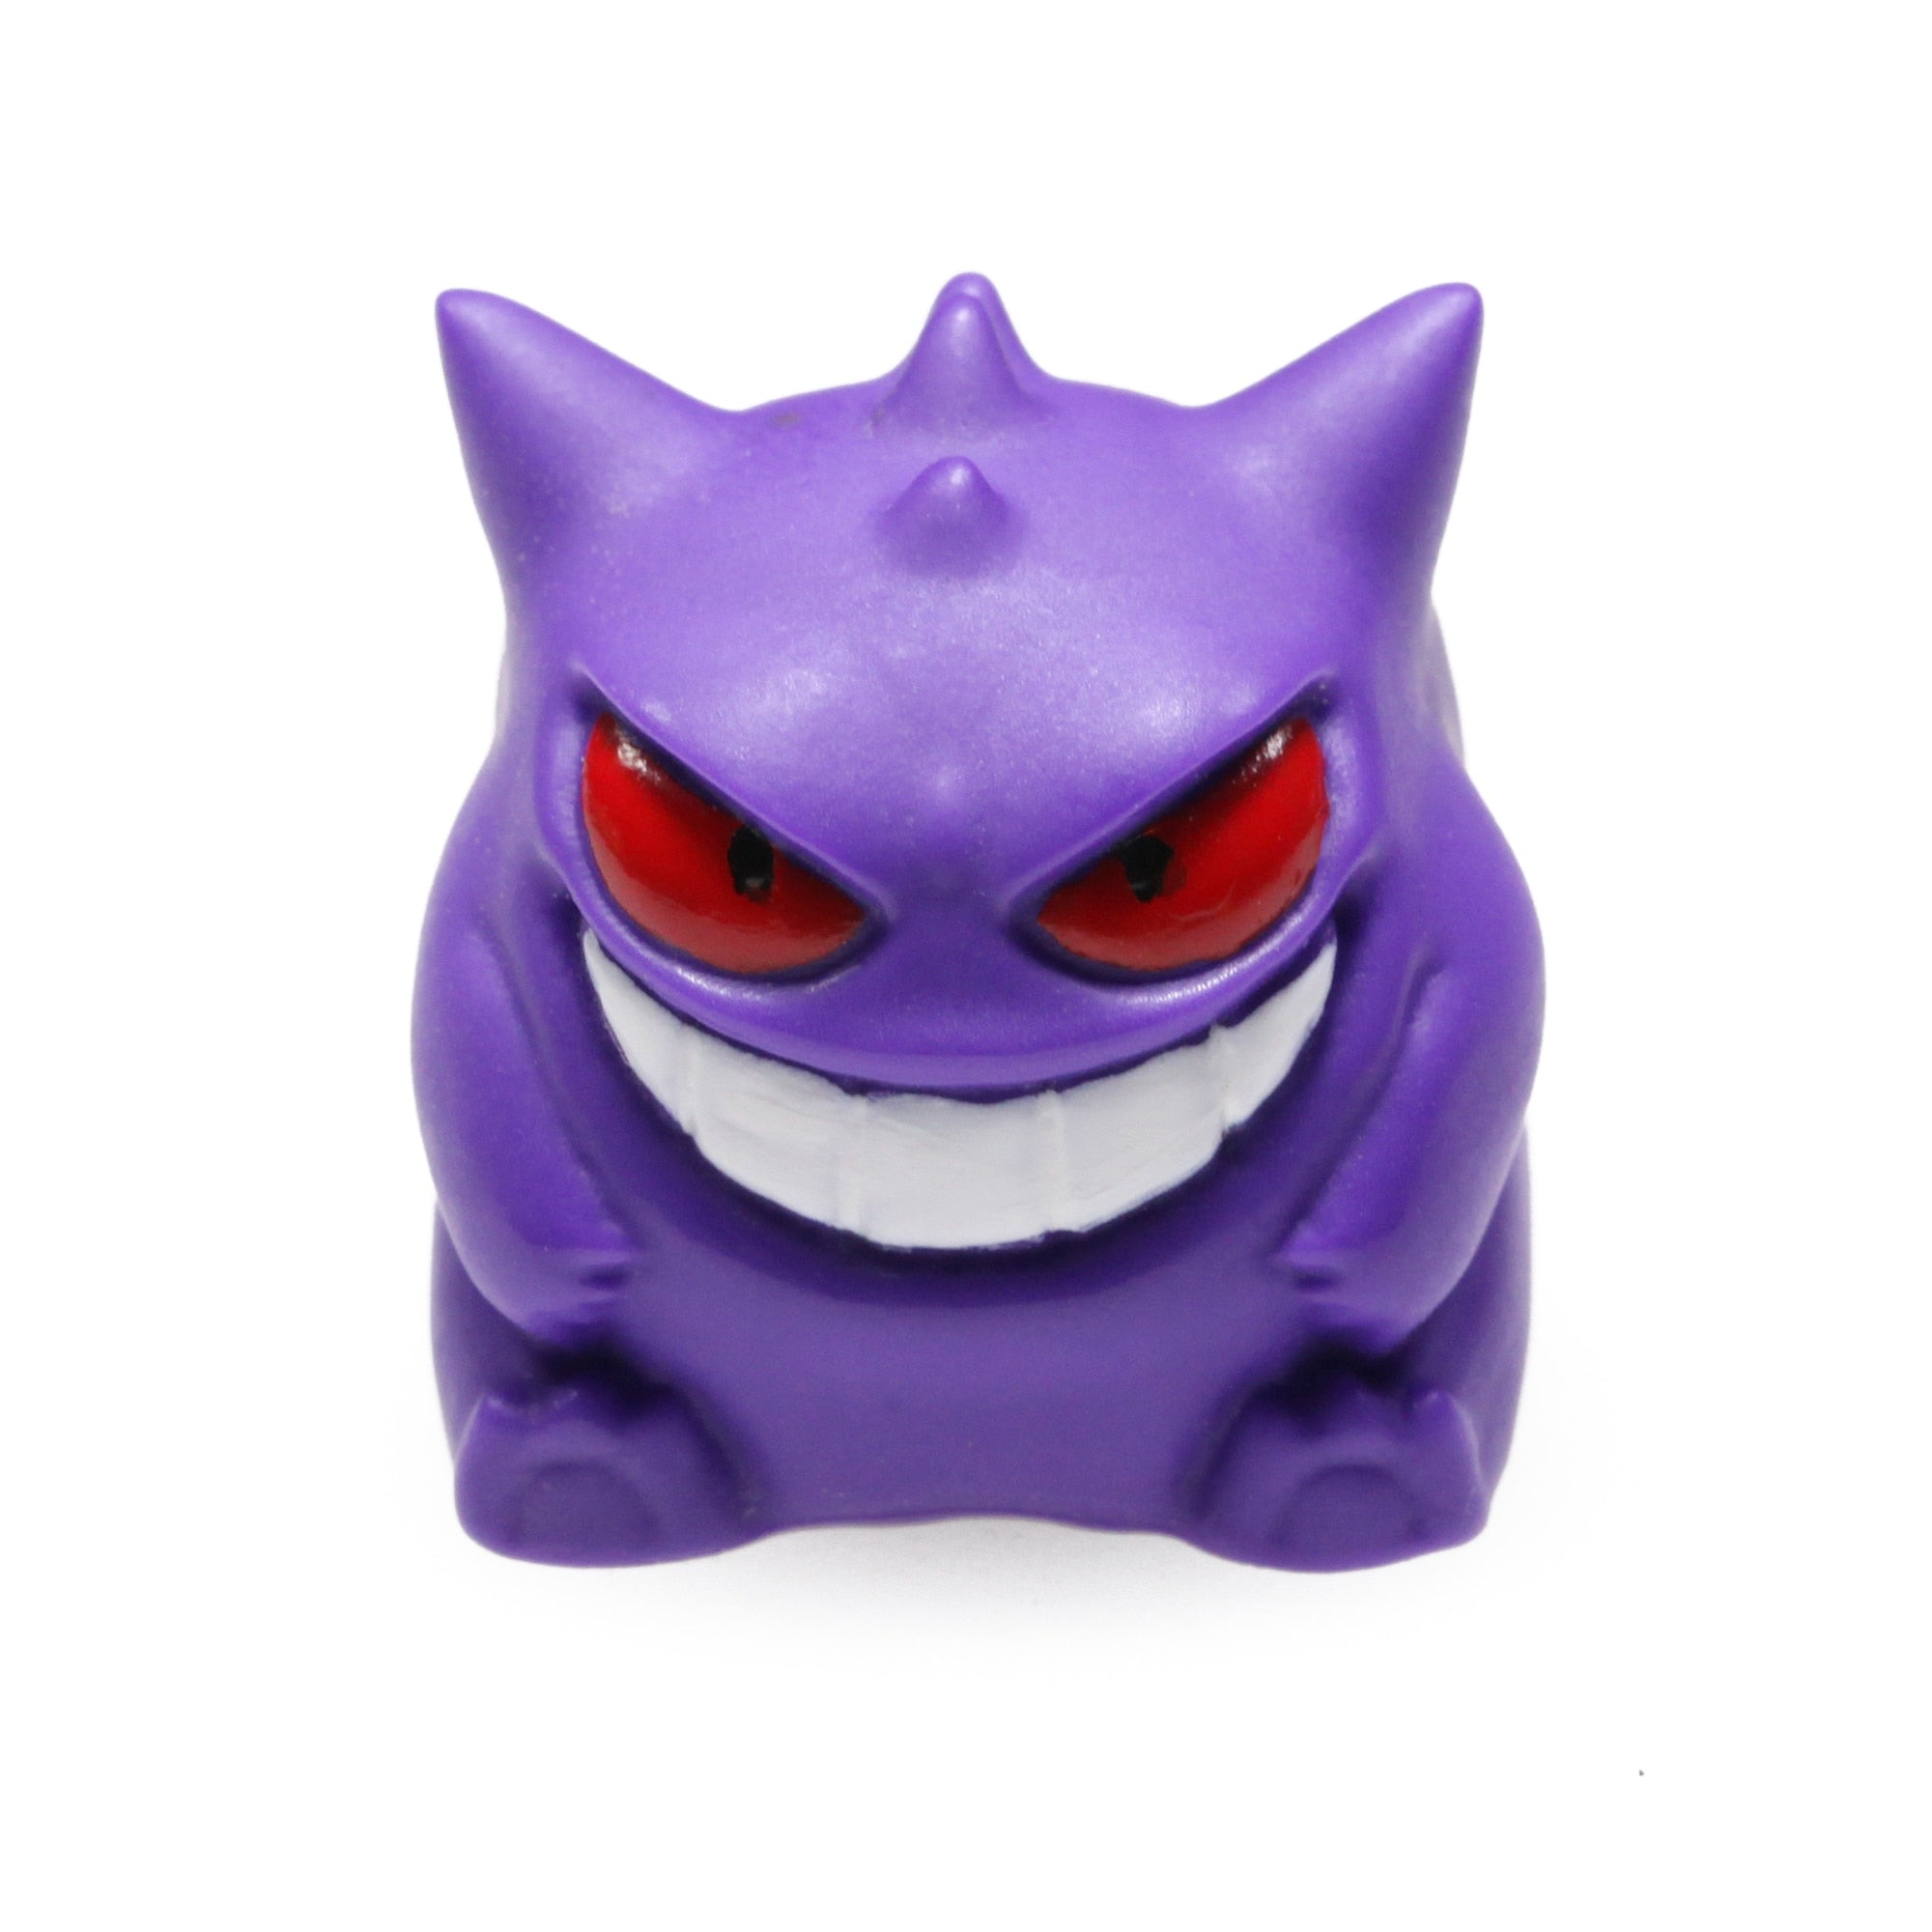 Cool Kit Novelty Gengar Pokémon inspired colourful resin keycap ゲンガー